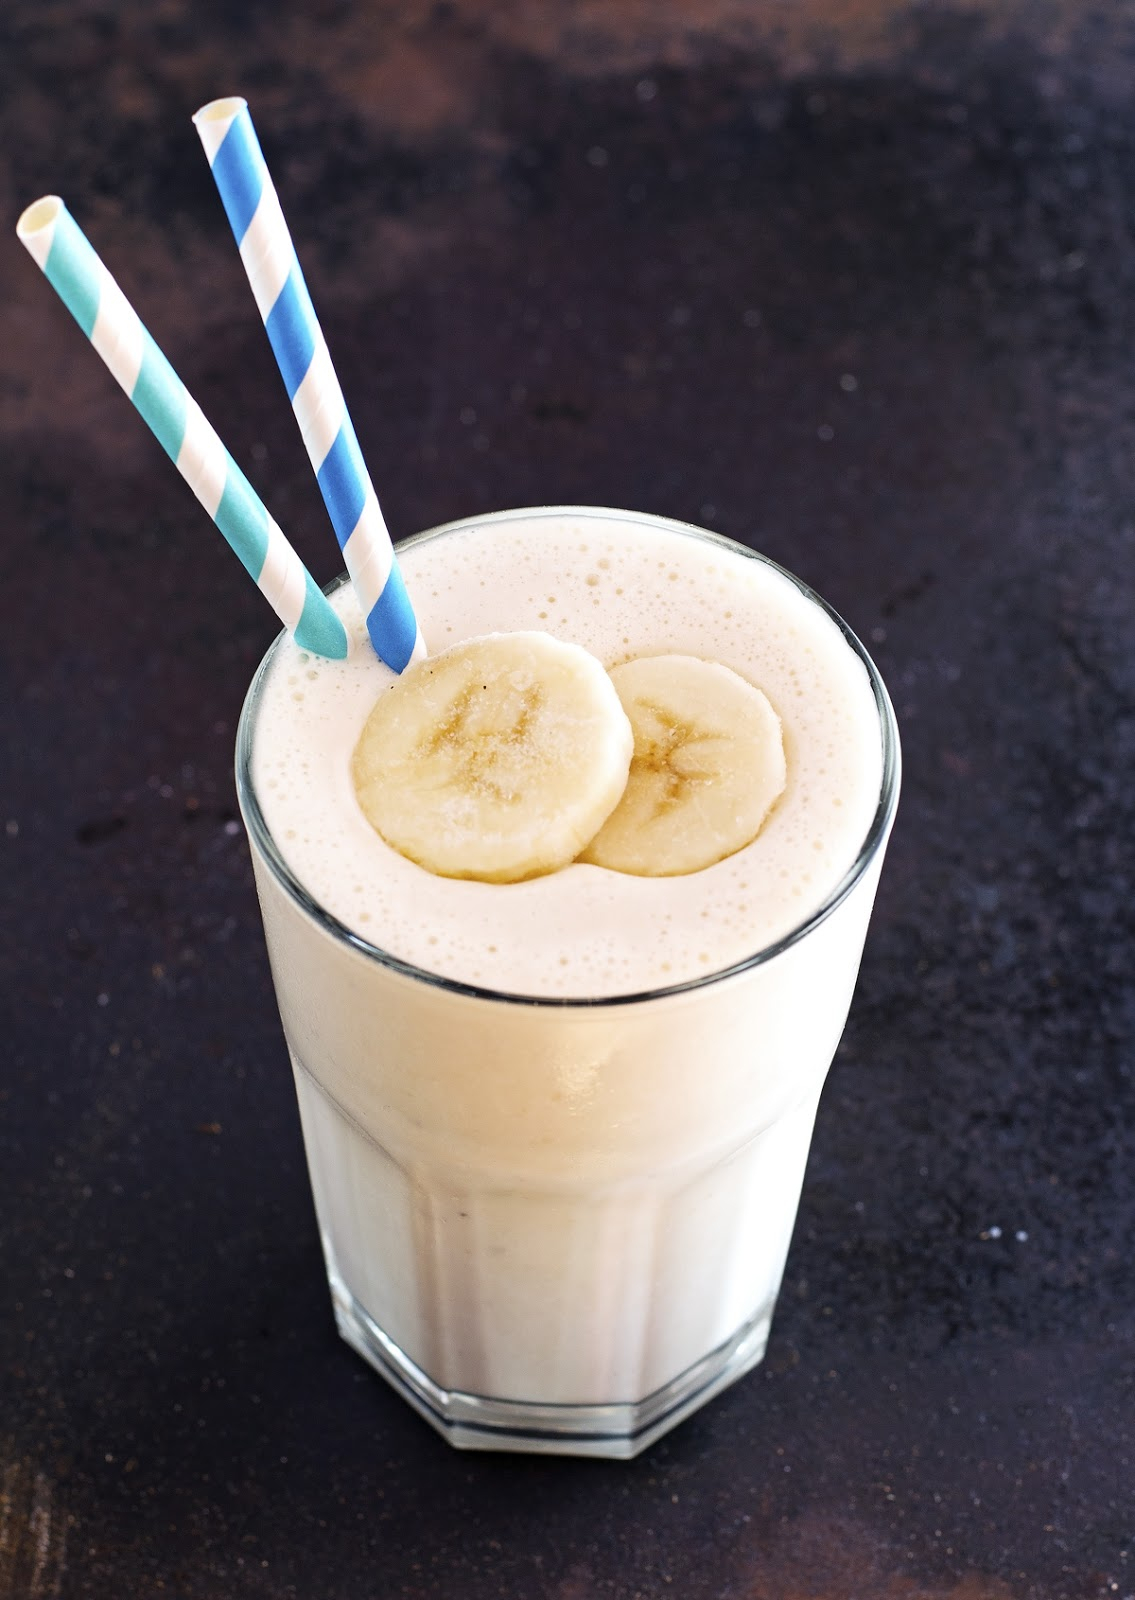 Creamy Banana Breakfast Smoothie